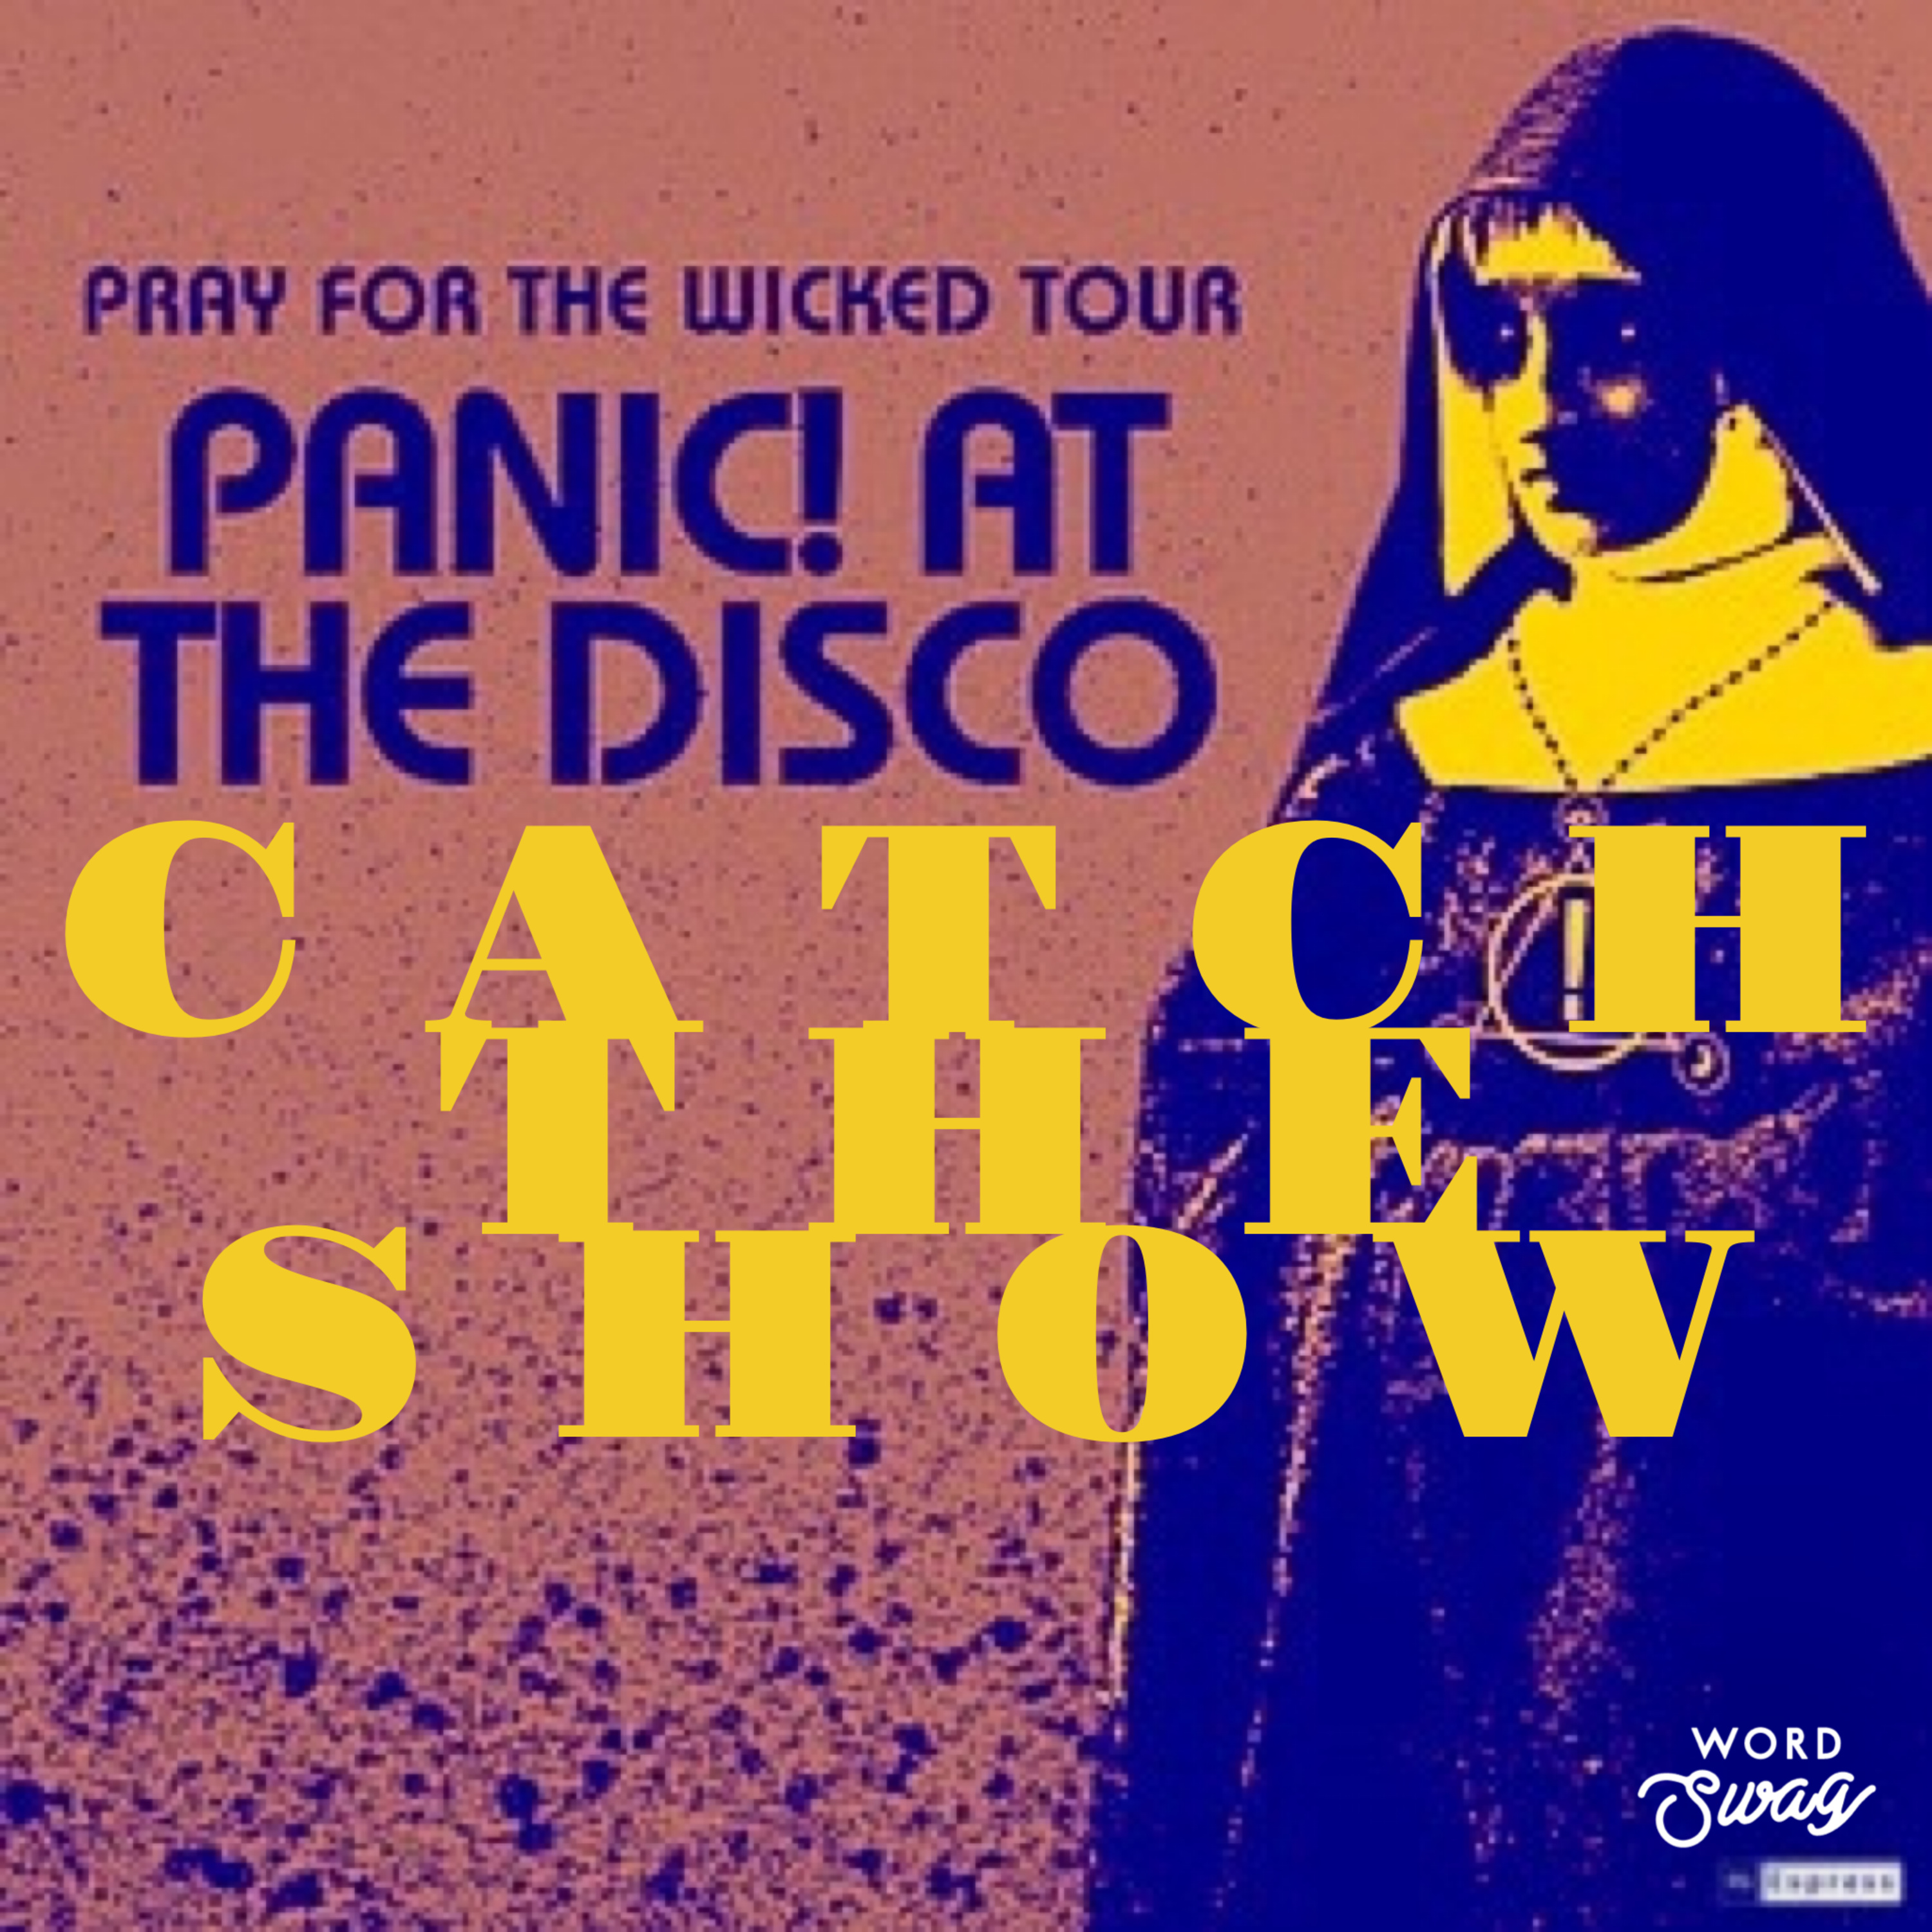 Episode 39: Panic At The Disco - Pray For The Wicked Tour 2019